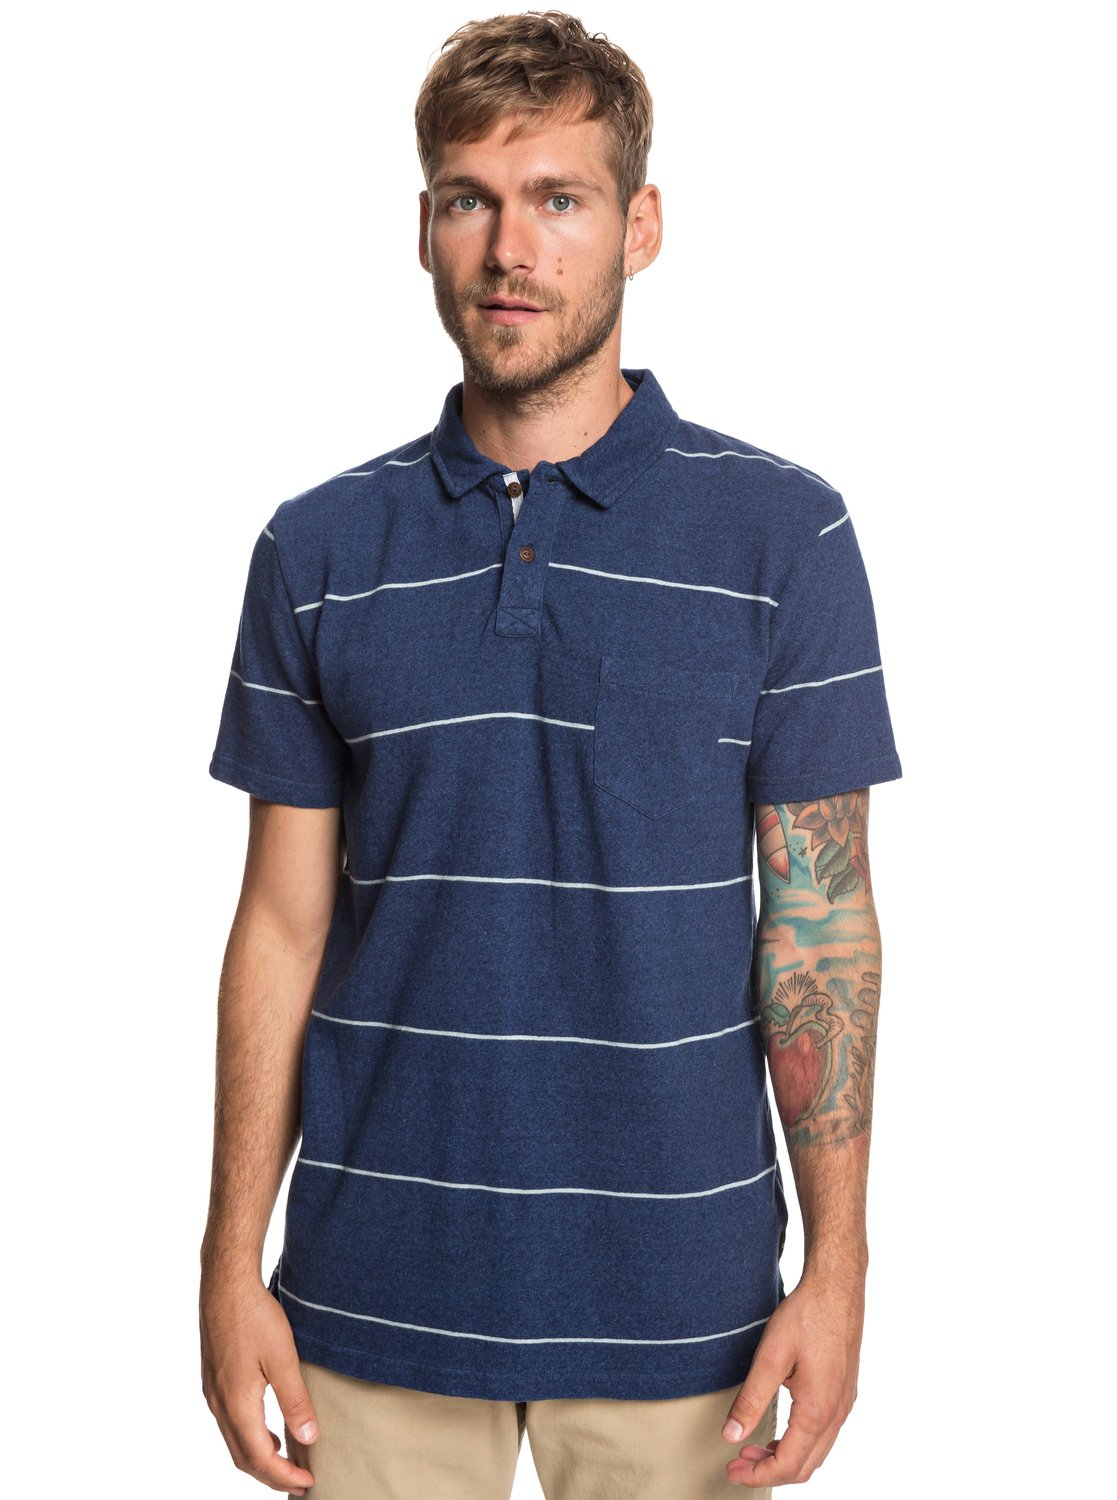 02486ea7ae4 0 Iron In The Soul - Short Sleeve Polo Shirt for Men Blue EQYKT03858  Quiksilver